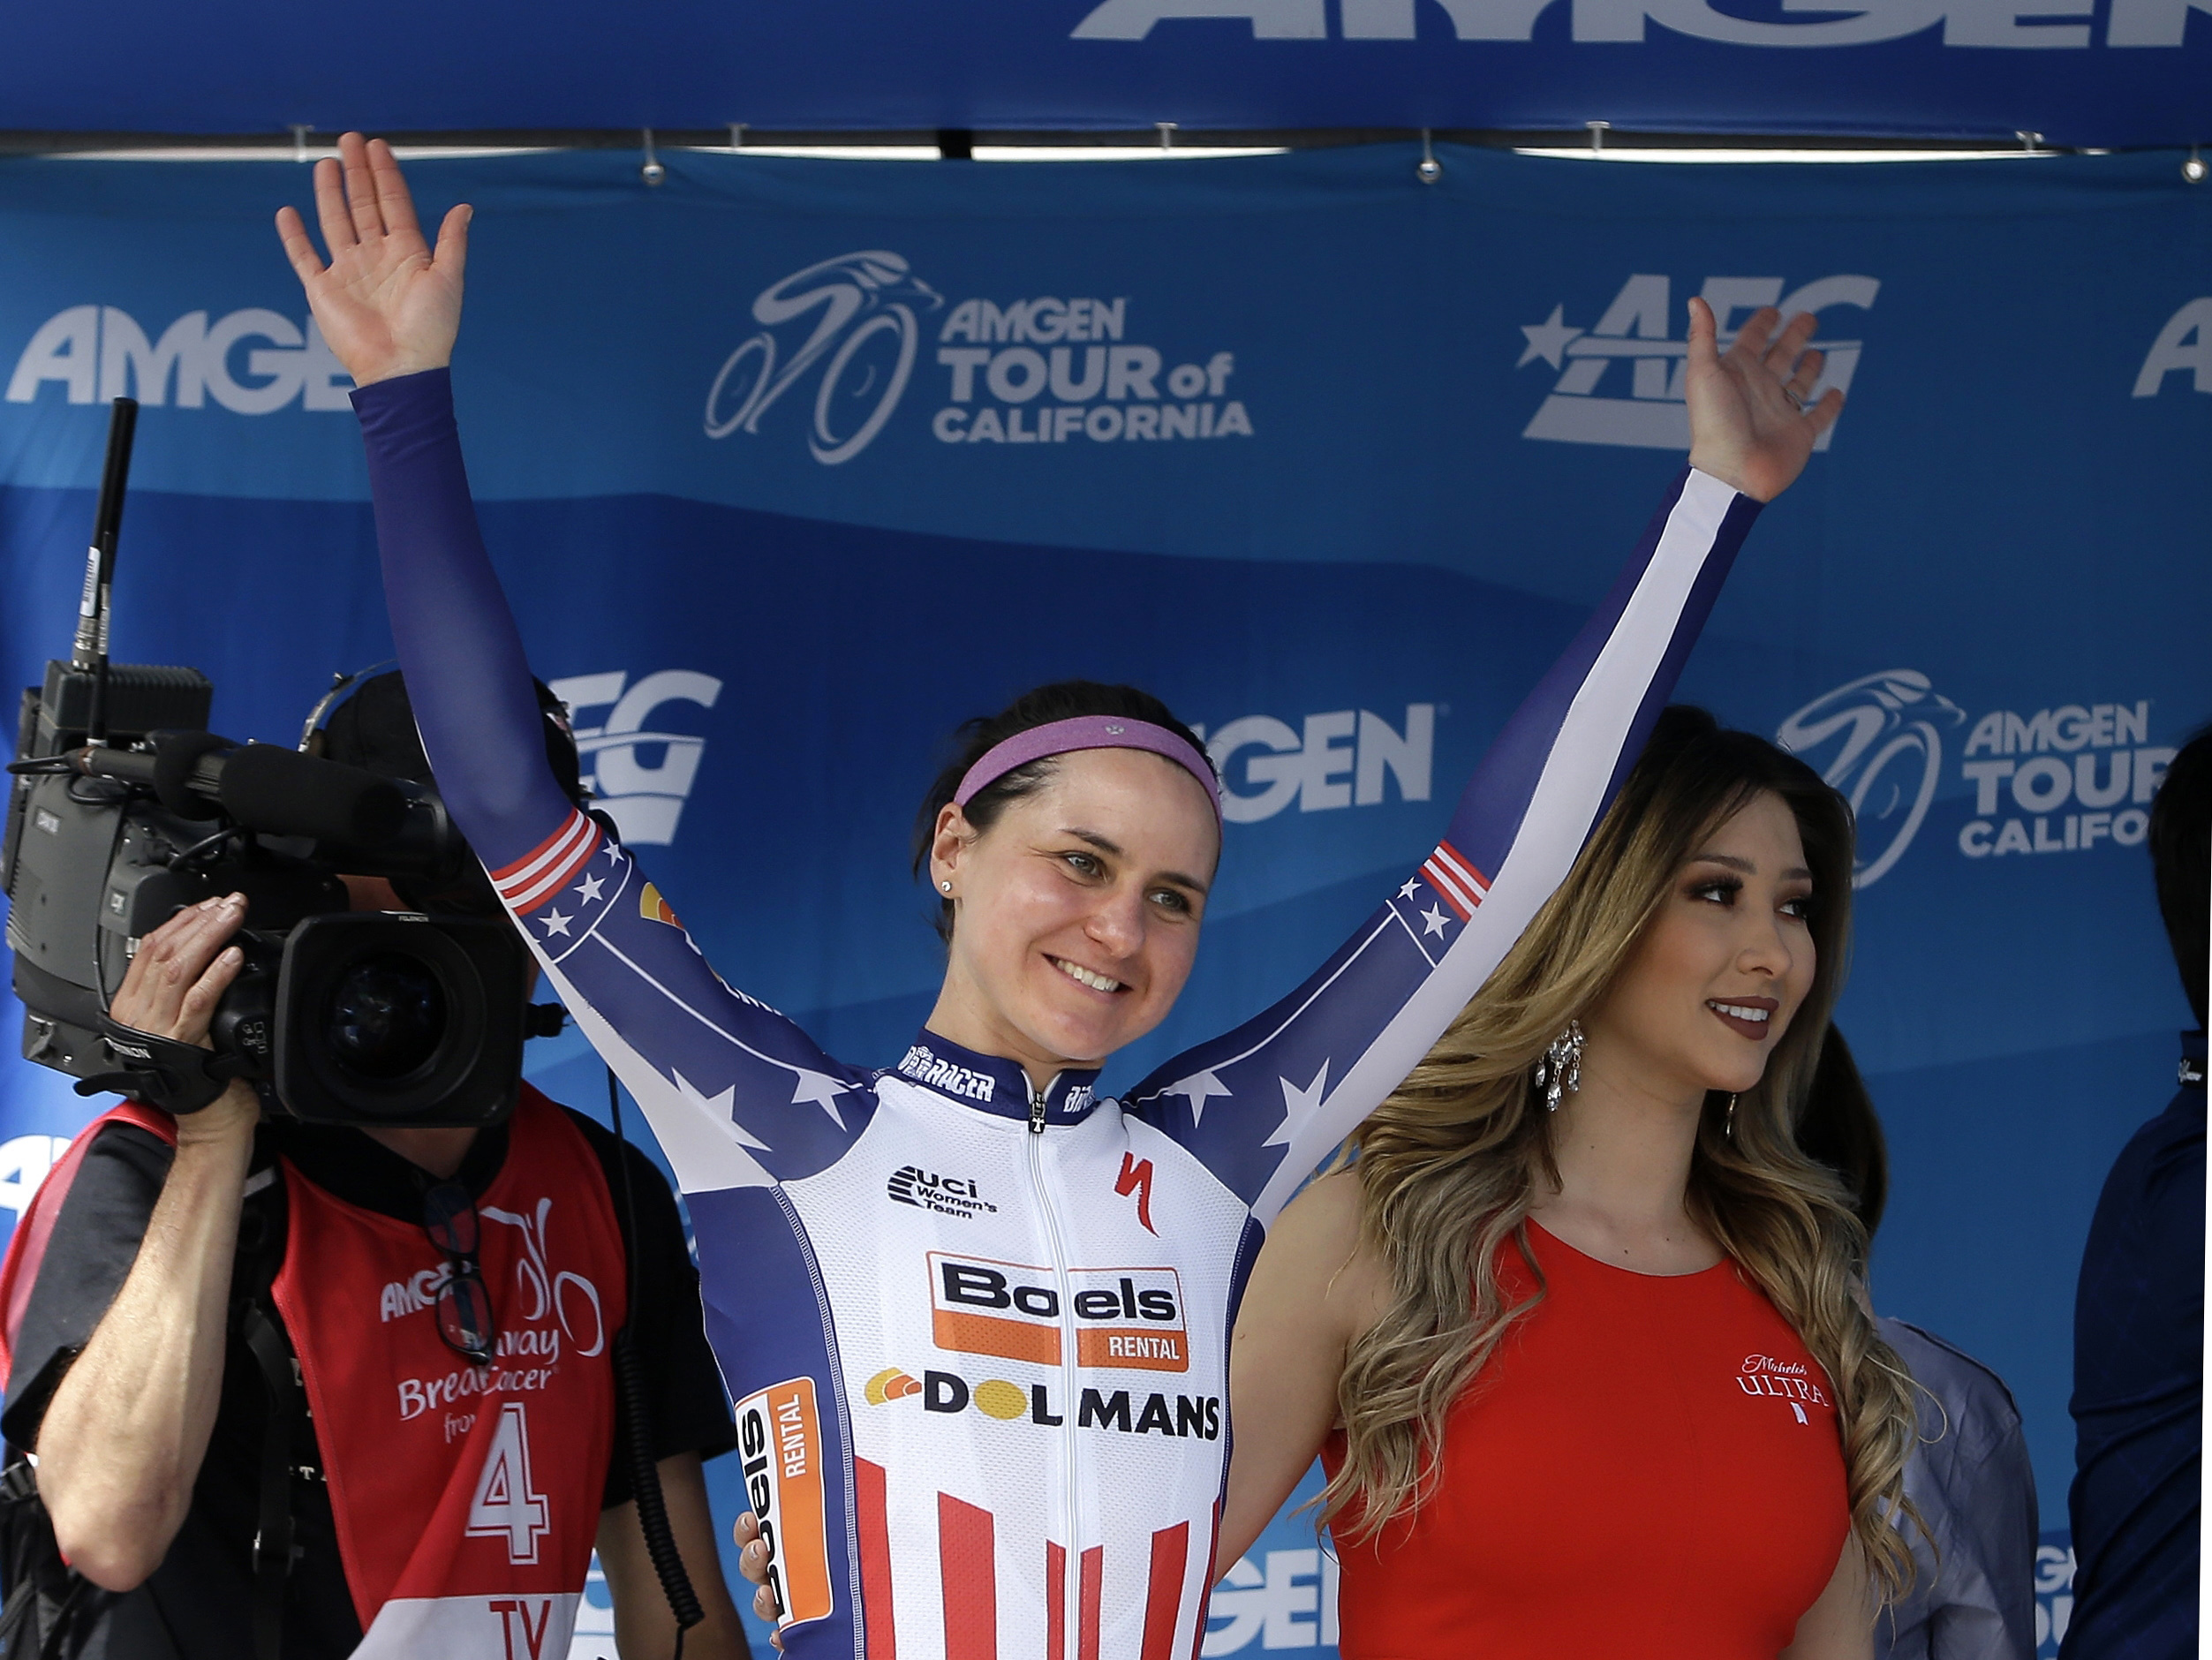 FILE - In this May 22, 2016, file photo, Megan Guarnier, of the United States, waves to the crowd after winning the women's Tour of California cycling race in Sacramento, Calif. The American women will arrive at the Rio Games as heavy favorites. Megan Gua